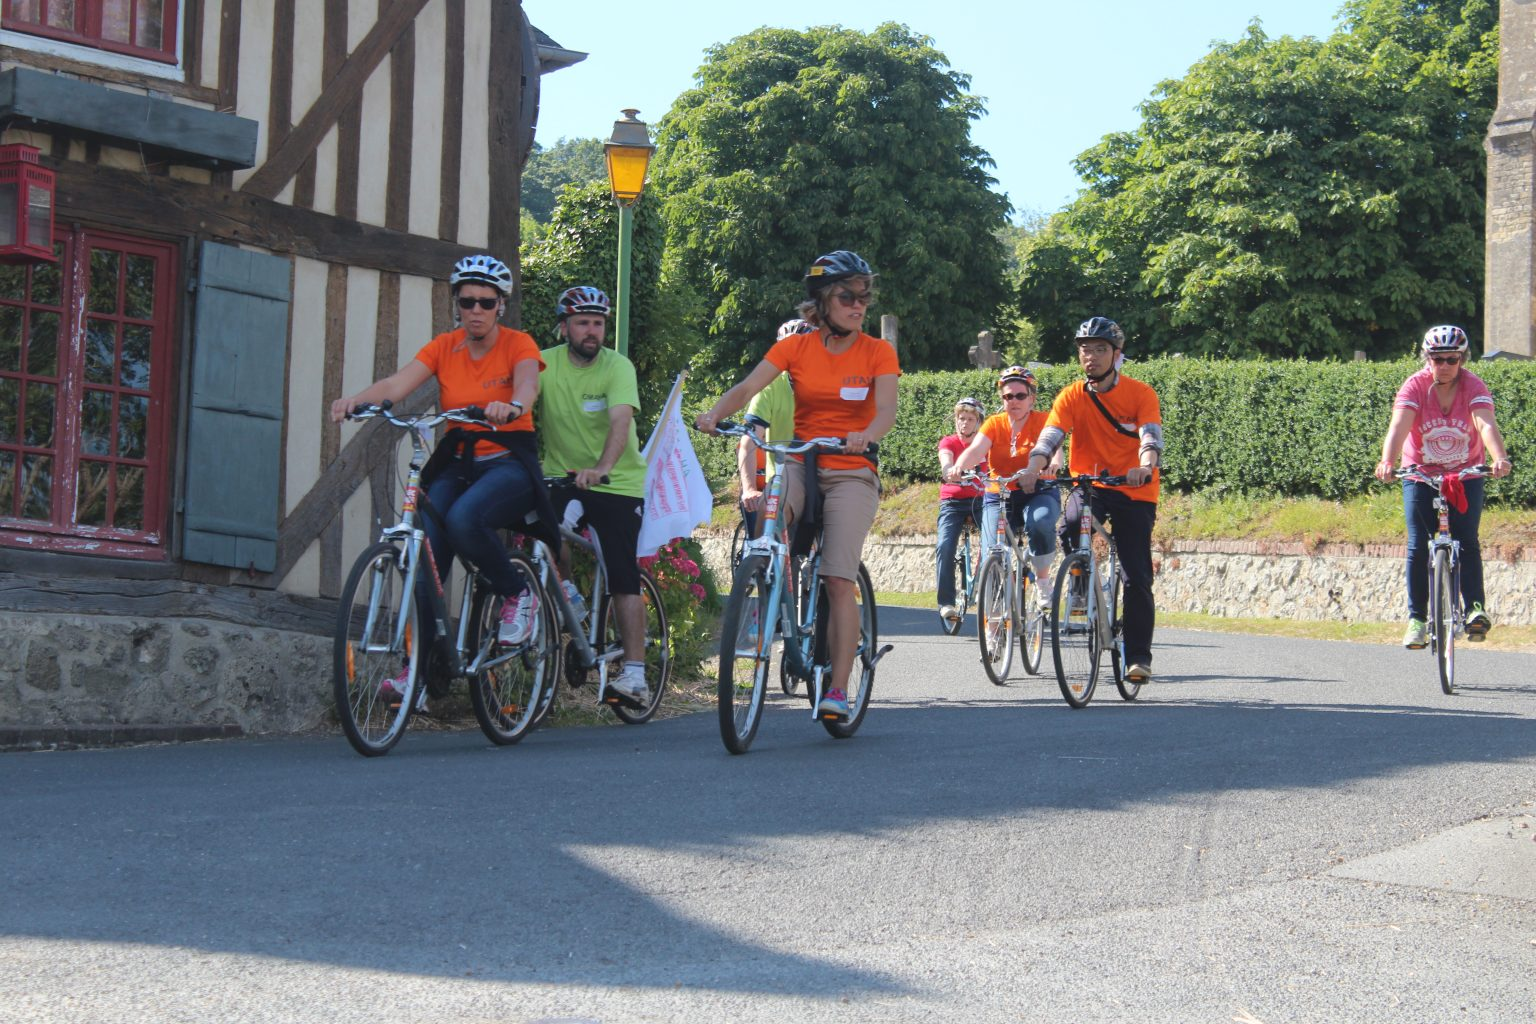 Rallye-velo-communication-teambuilding-cohesion-equipe-normandie